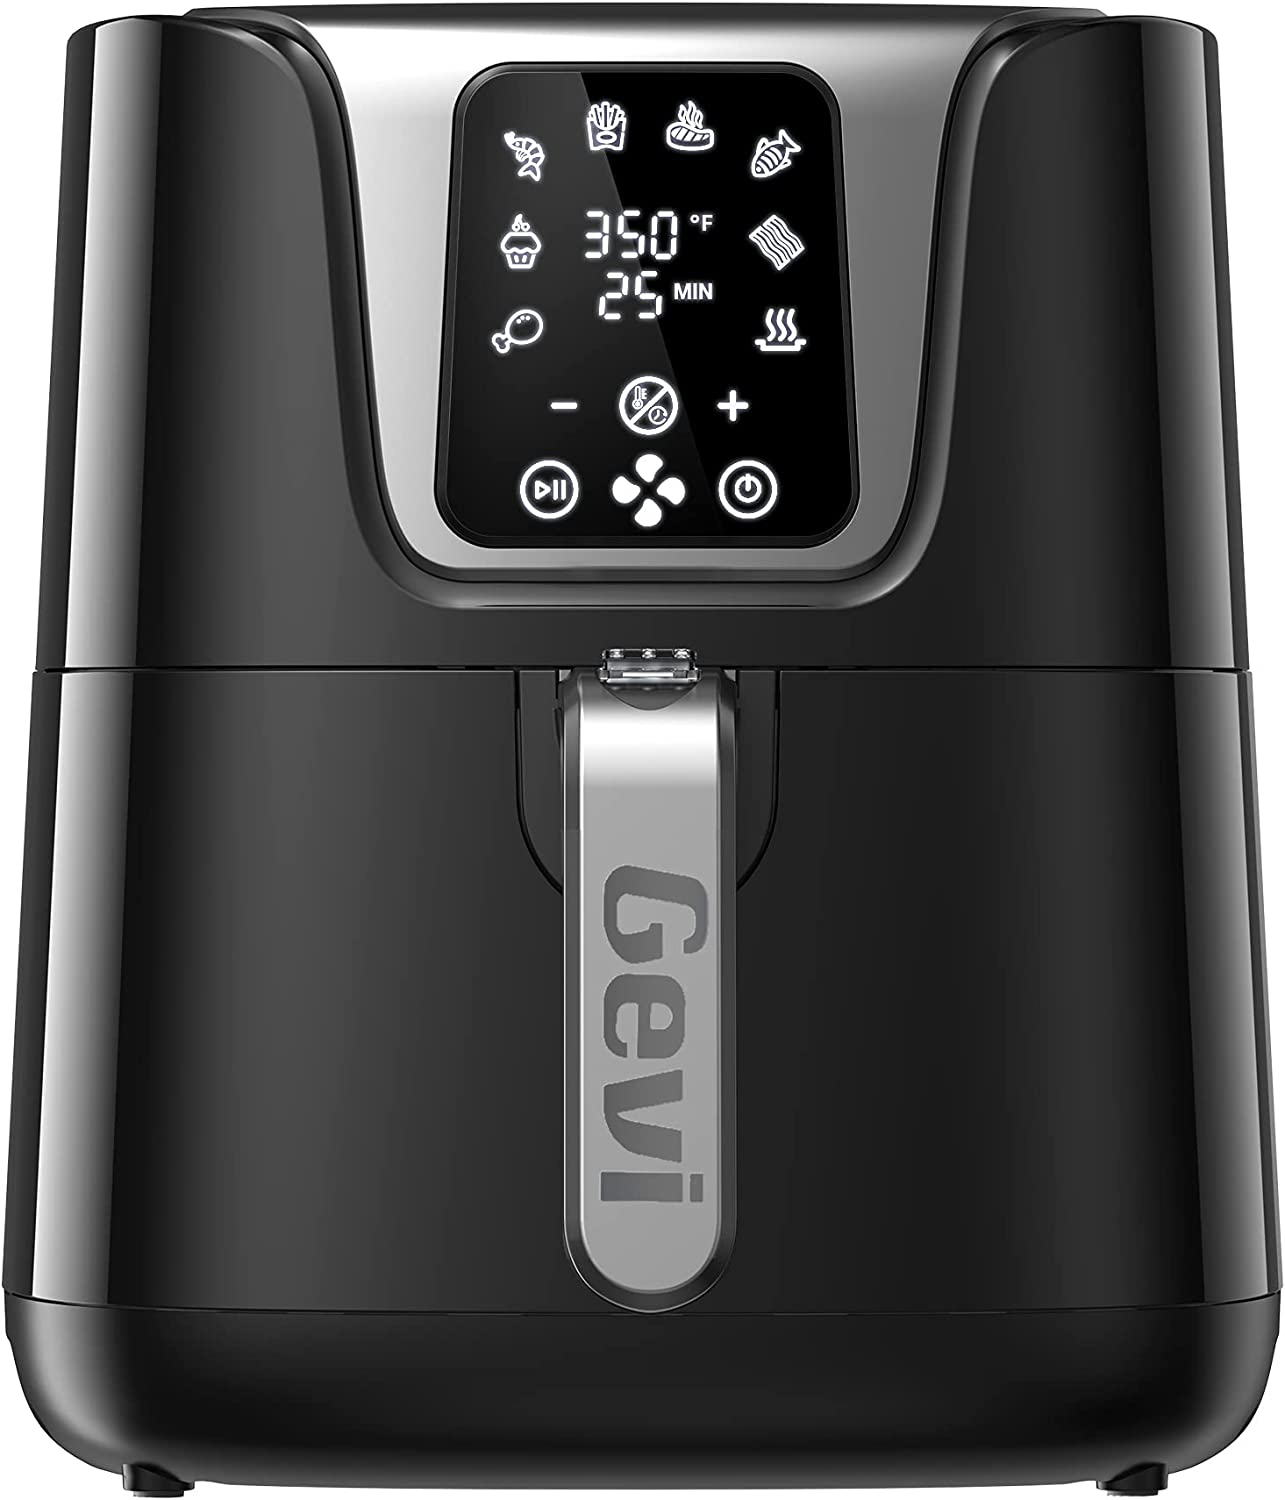 Gevi Air Fryer with 7 Presets, 3.8 Quart Oilless Air Fryer Oven with 60 Minute Timer, LED Touch Digital Screen, Nonstick Basket & Auto Shutoff, BPA-free & UL Certified, 1500W(Black)